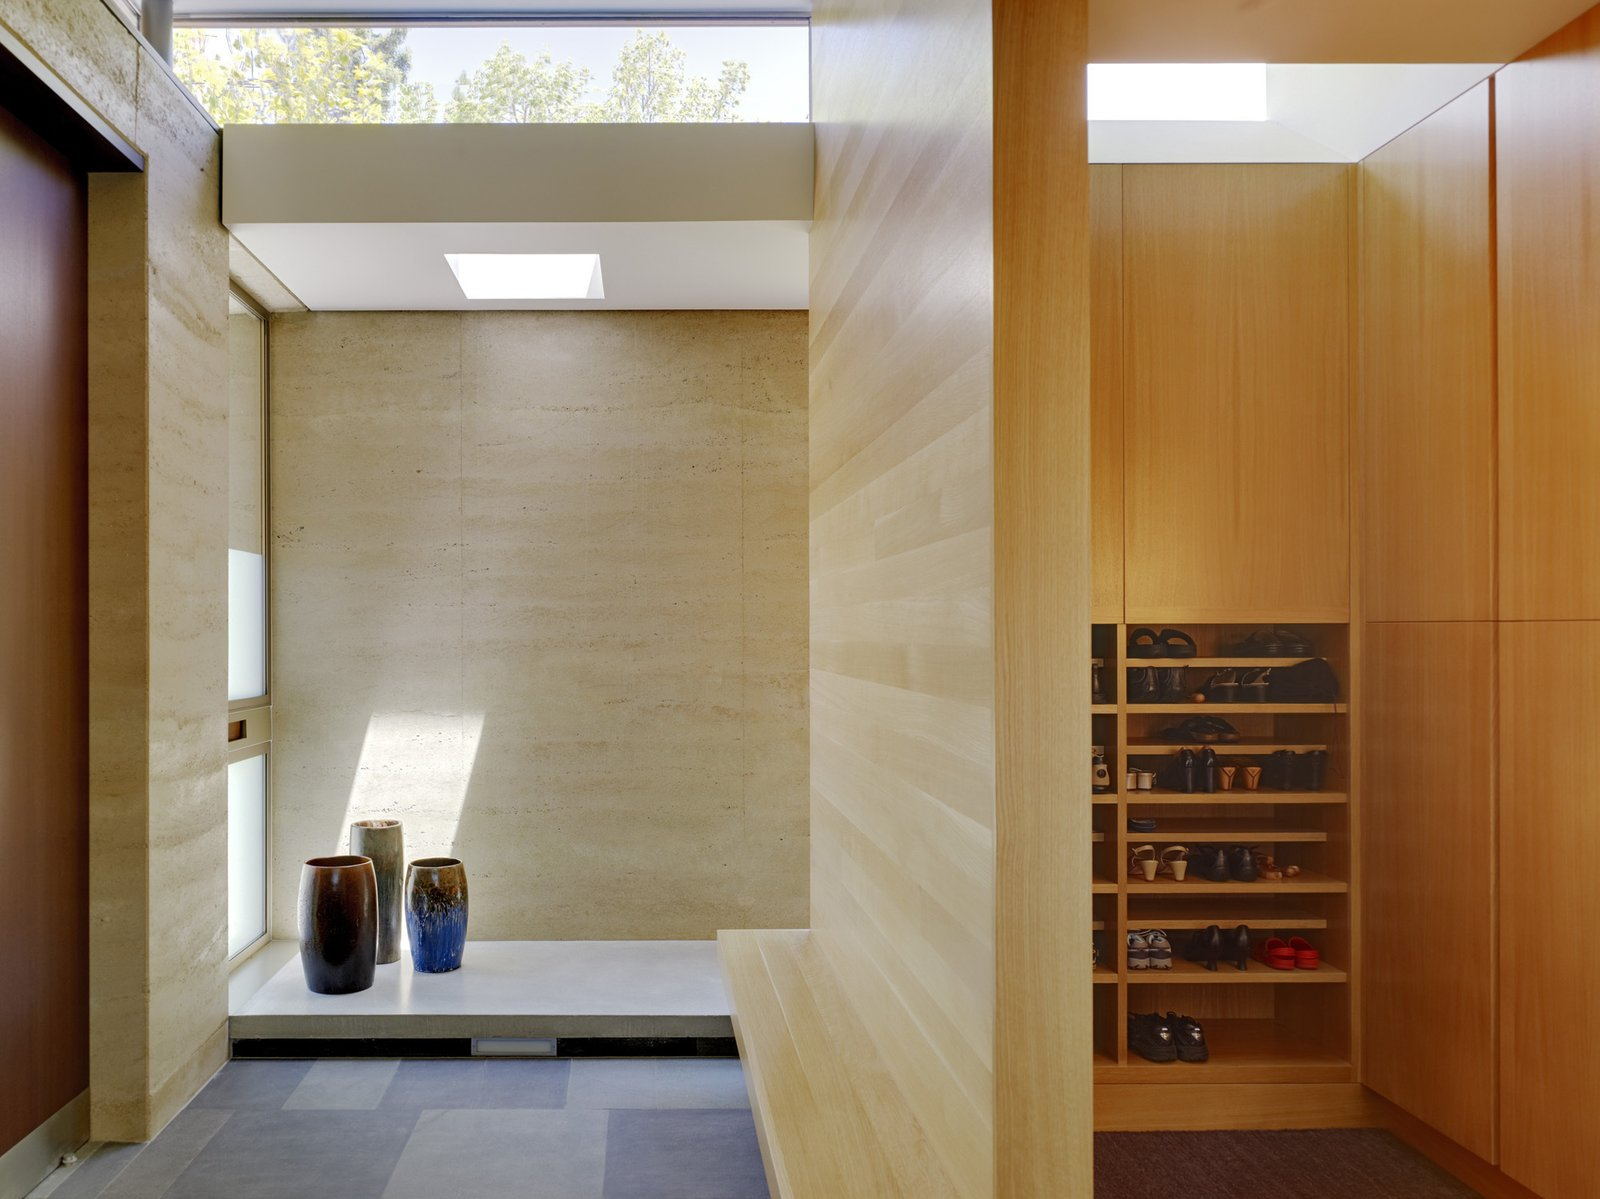 A traditional genkan (a Japanese entryway) was part of the architectural program early on. Shoes are removed before entering the main living space, which is elevated six inches above the floor level of the entryway. The blonde wood is rift-cut white oak.  Photo 6 of 11 in 11 Ways to Create a Modern Mudroom in Your Home from Designs Inspired by Japanese Architecture and Craft